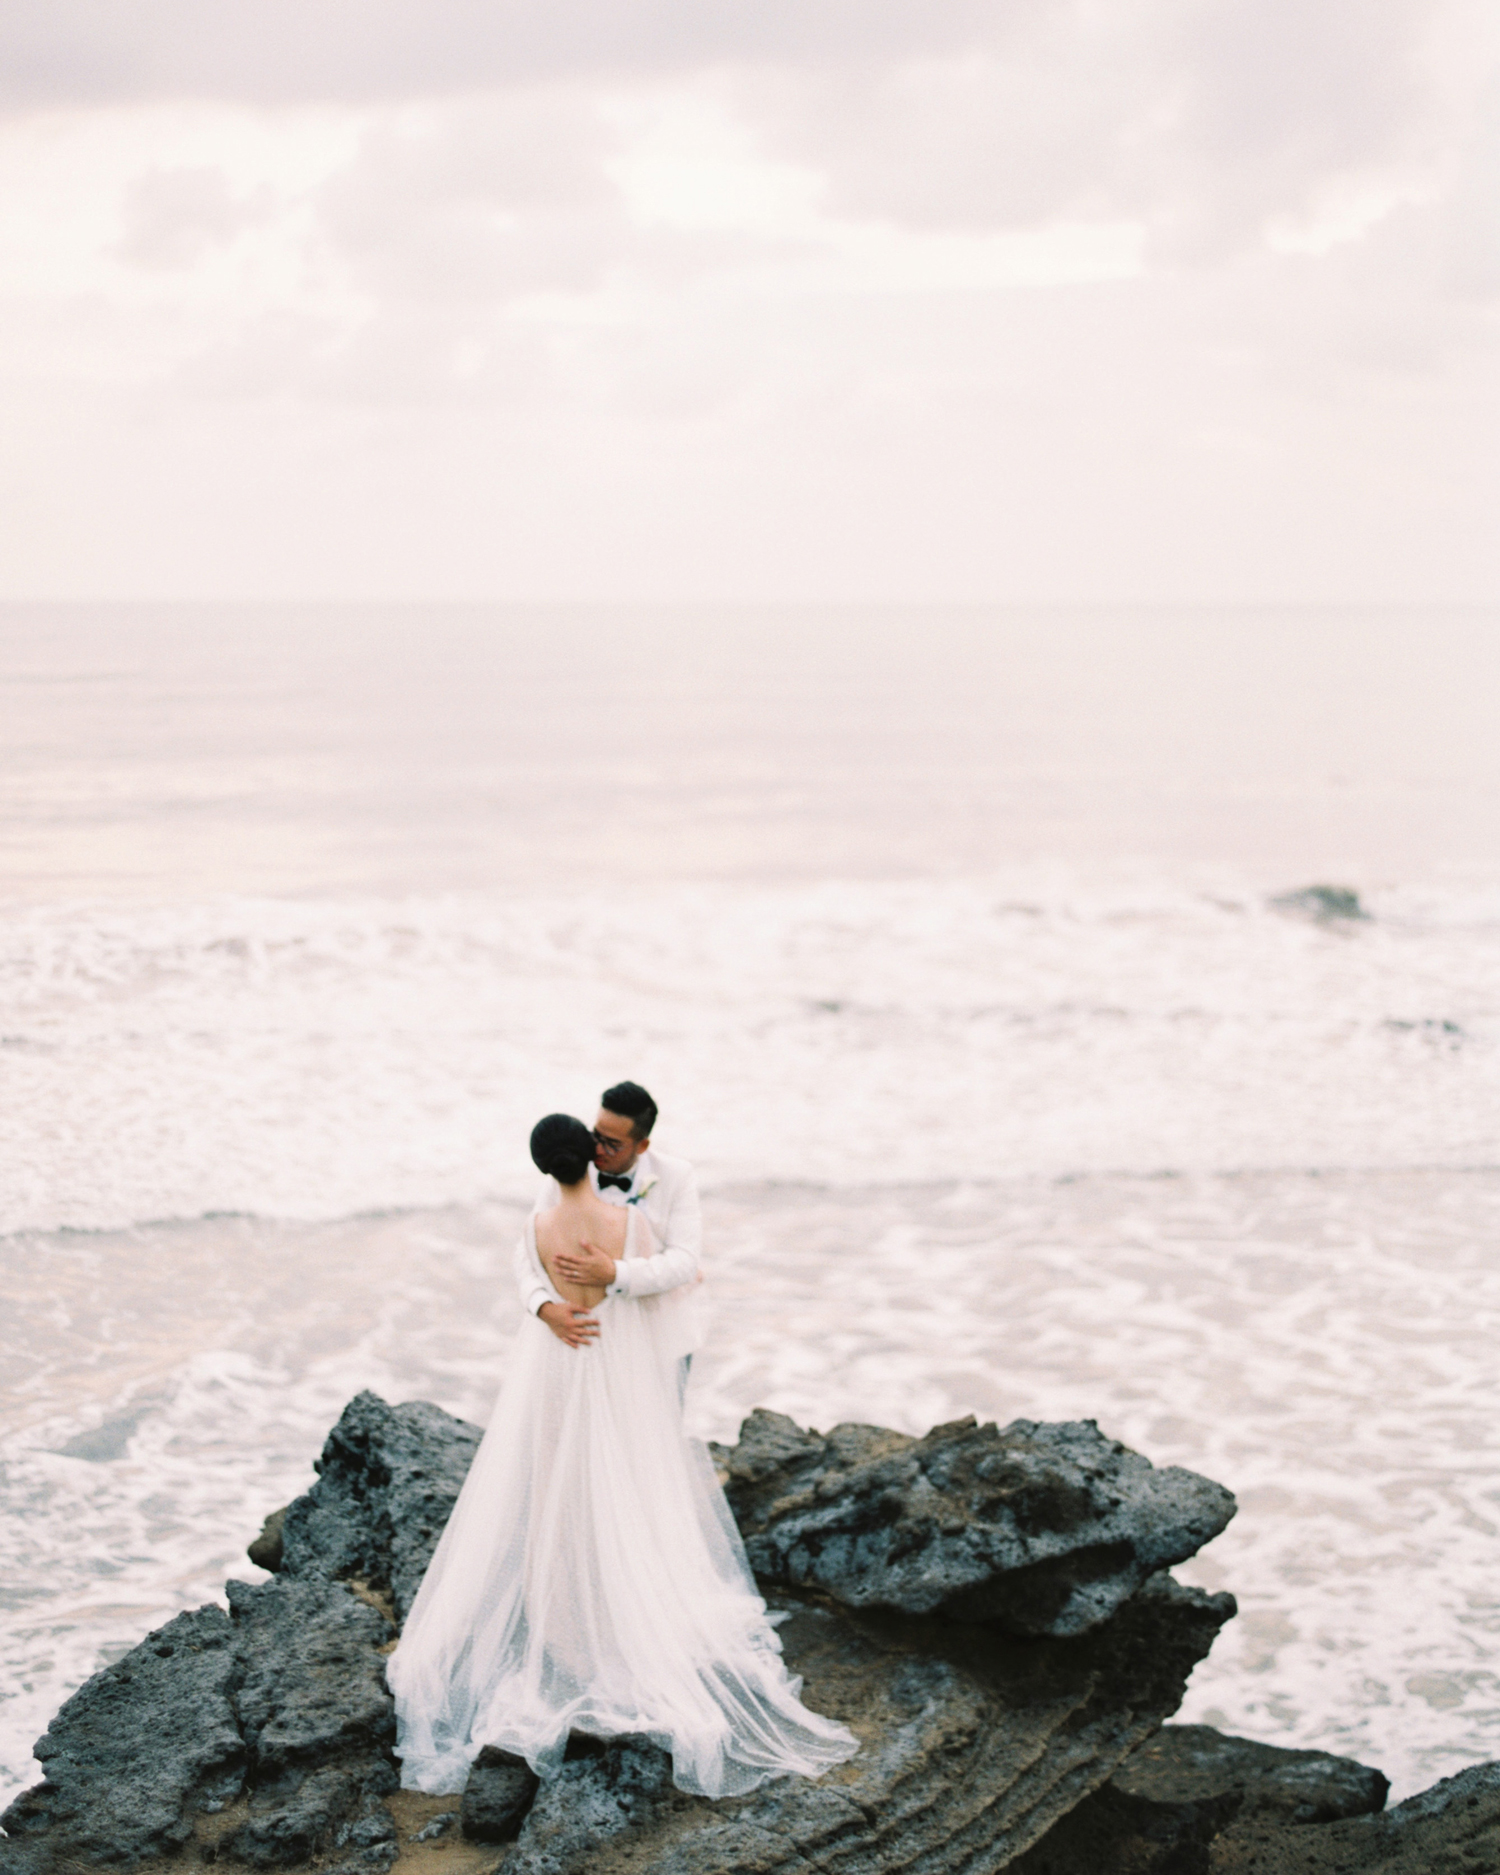 sunset wedding photos bride and groom embracing on oceanic cliff